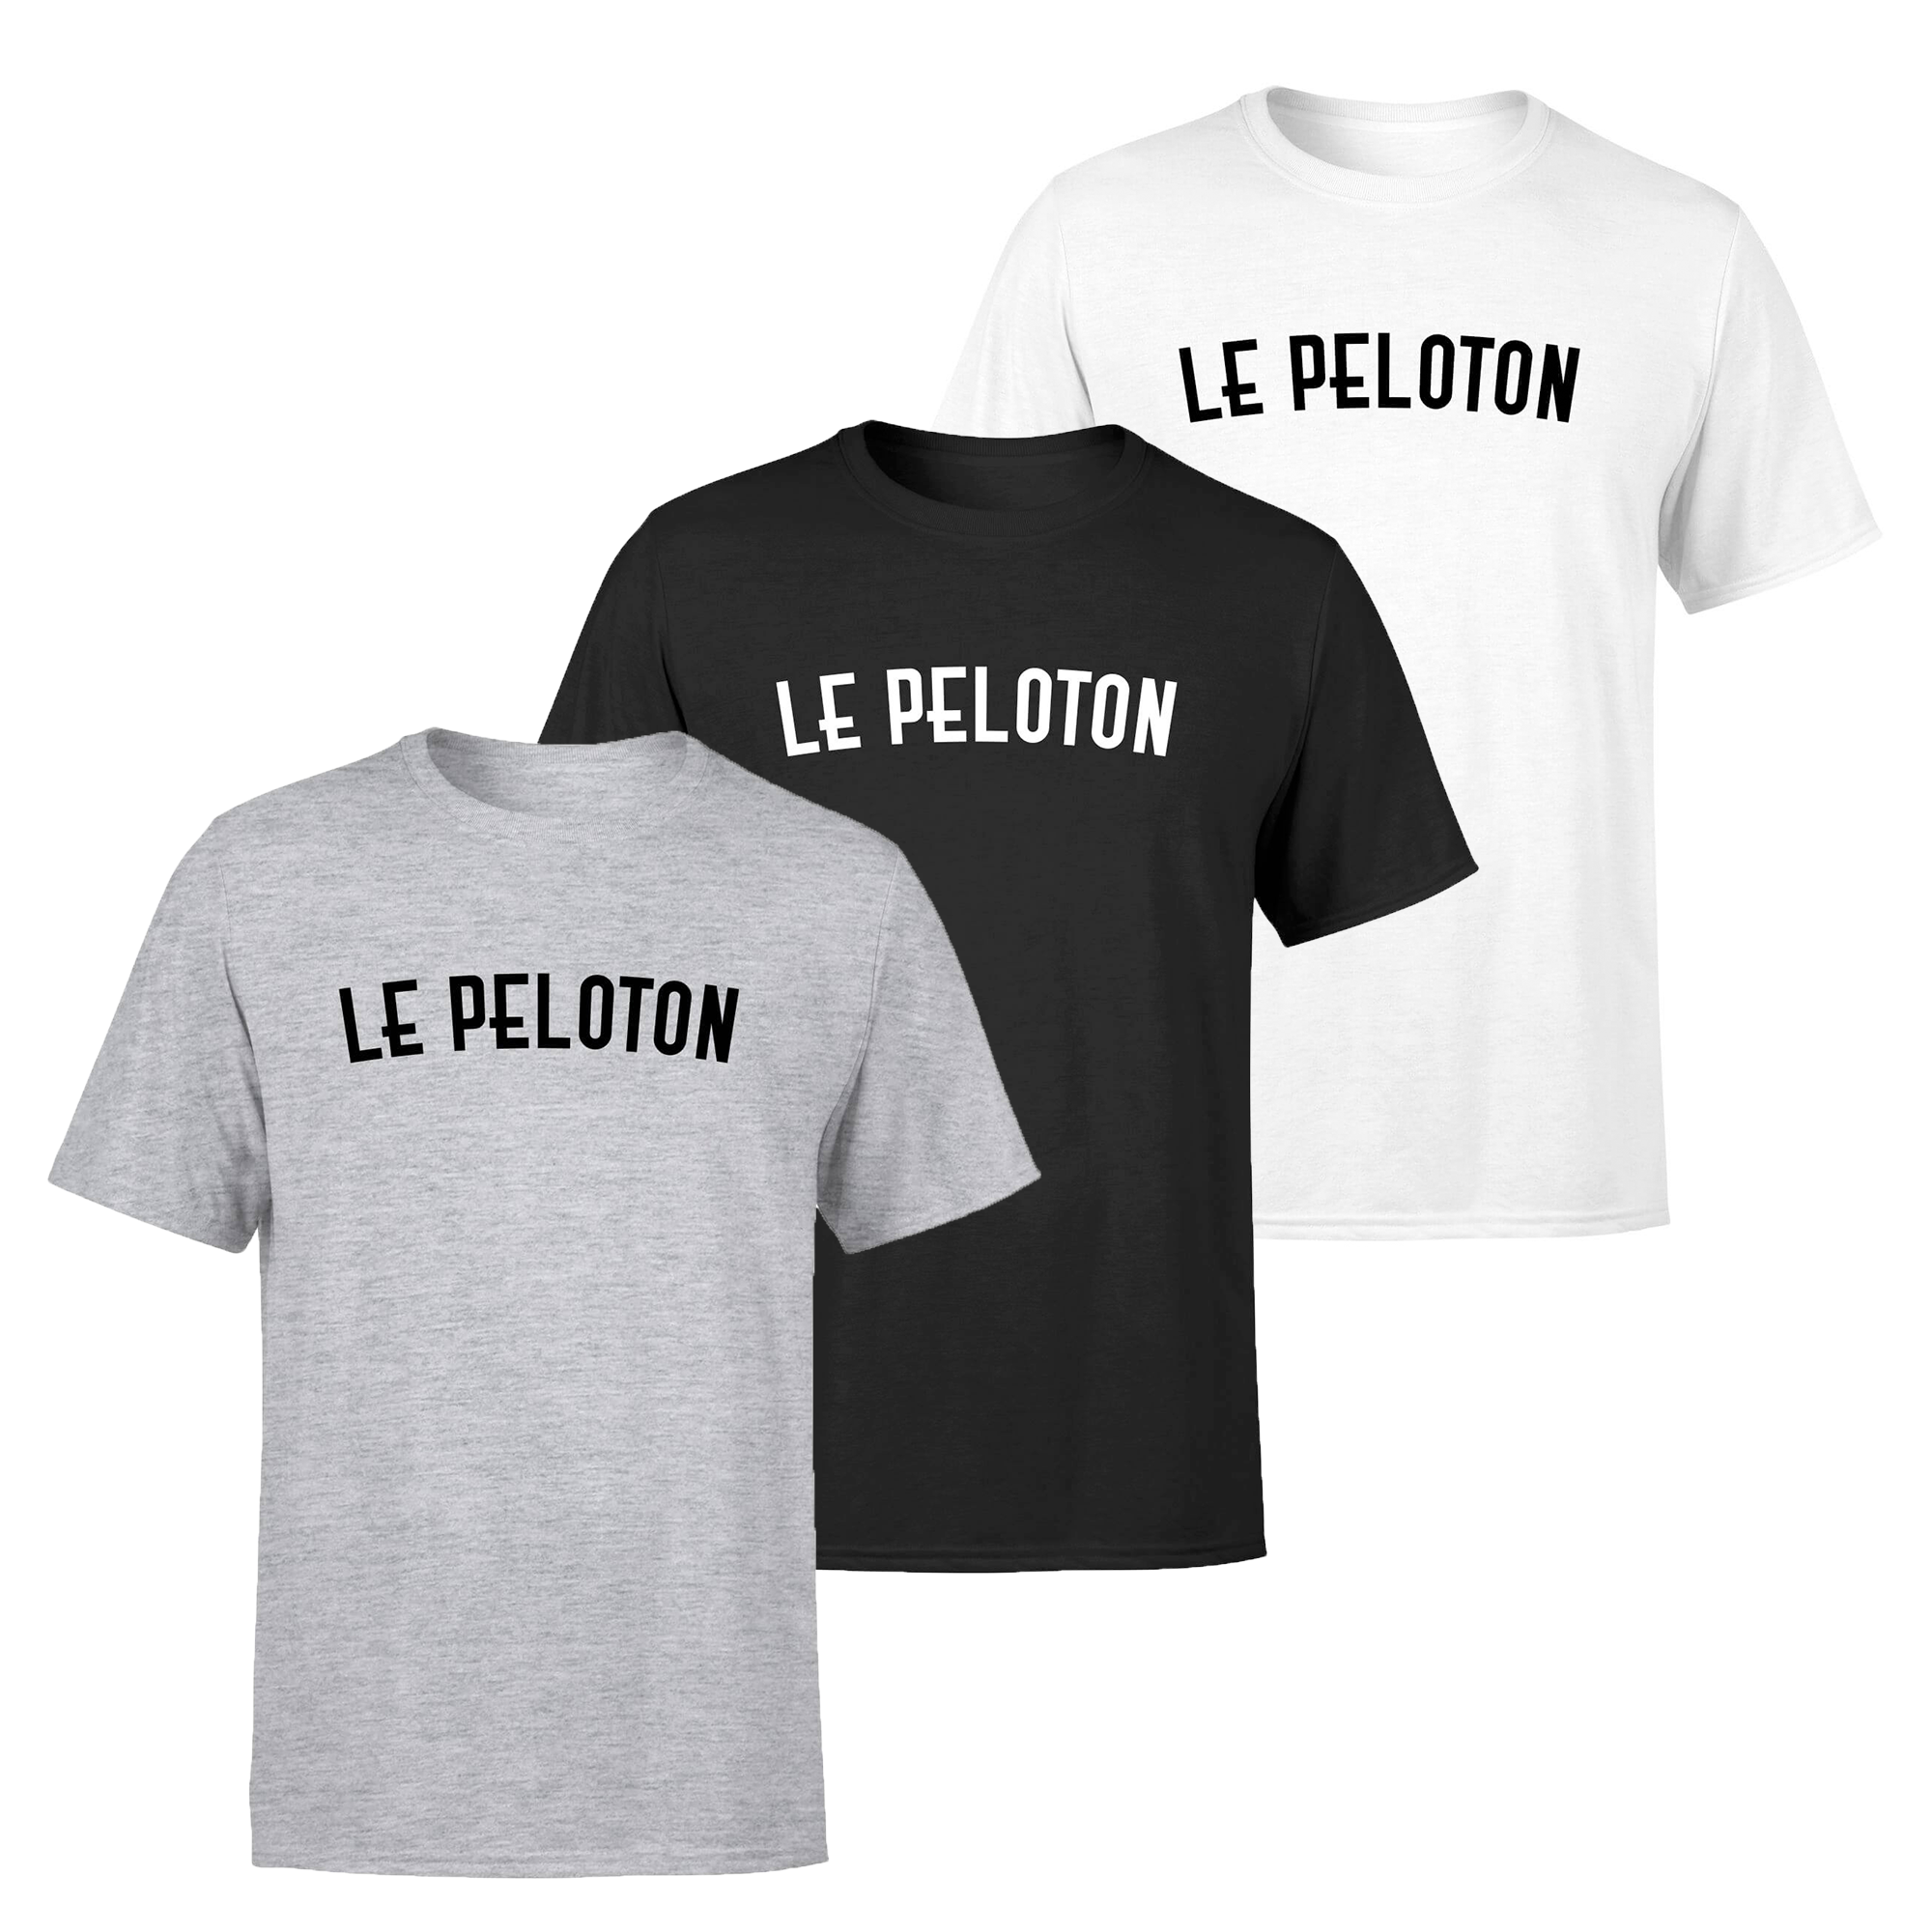 16 of the best cycling T-shirts | road.cc